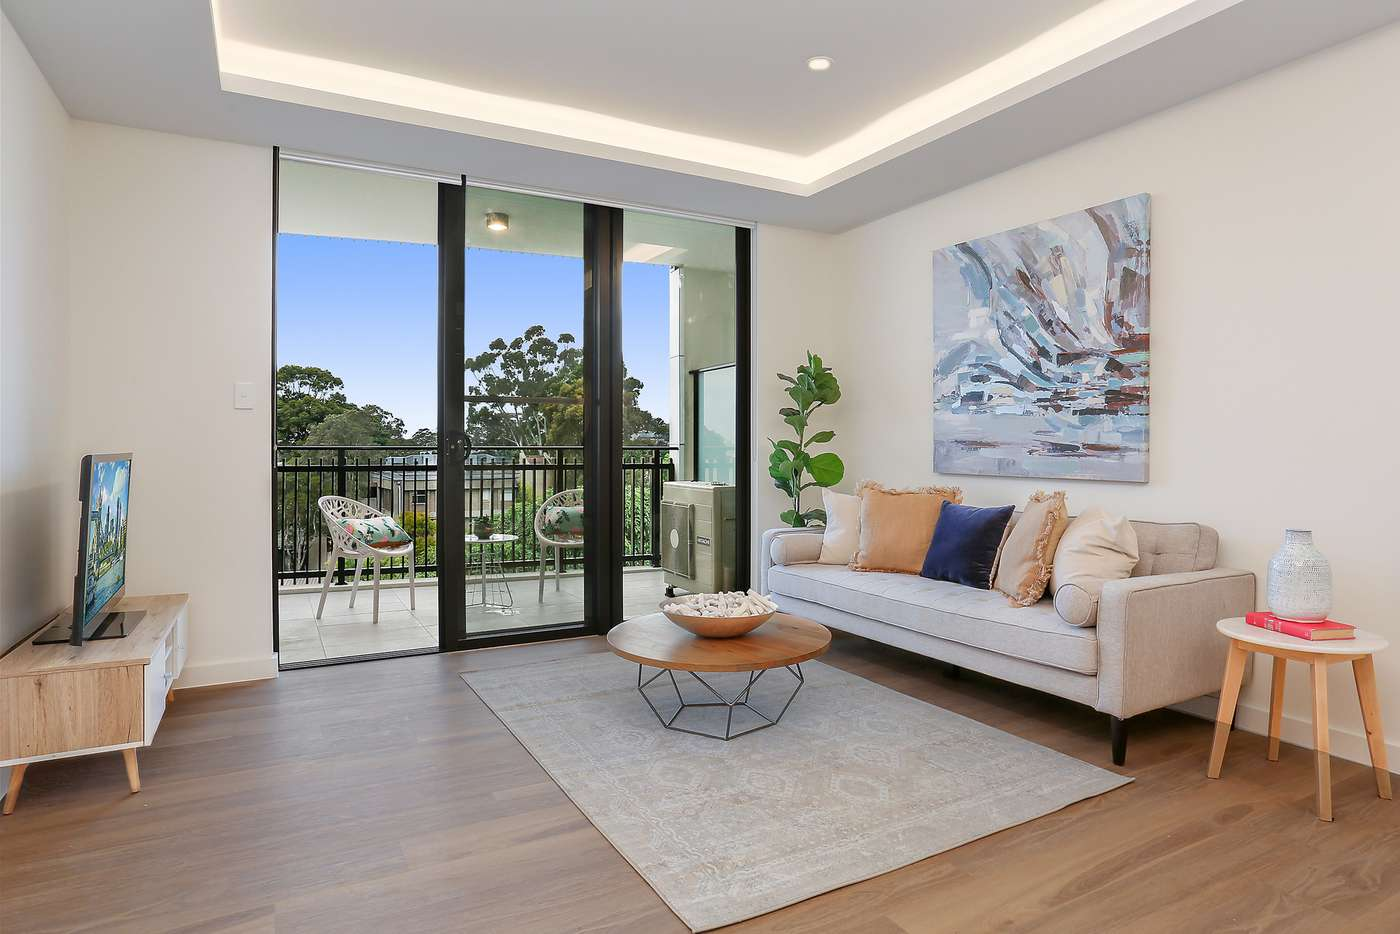 Main view of Homely apartment listing, 504/2 Murrell Street, Ashfield NSW 2131